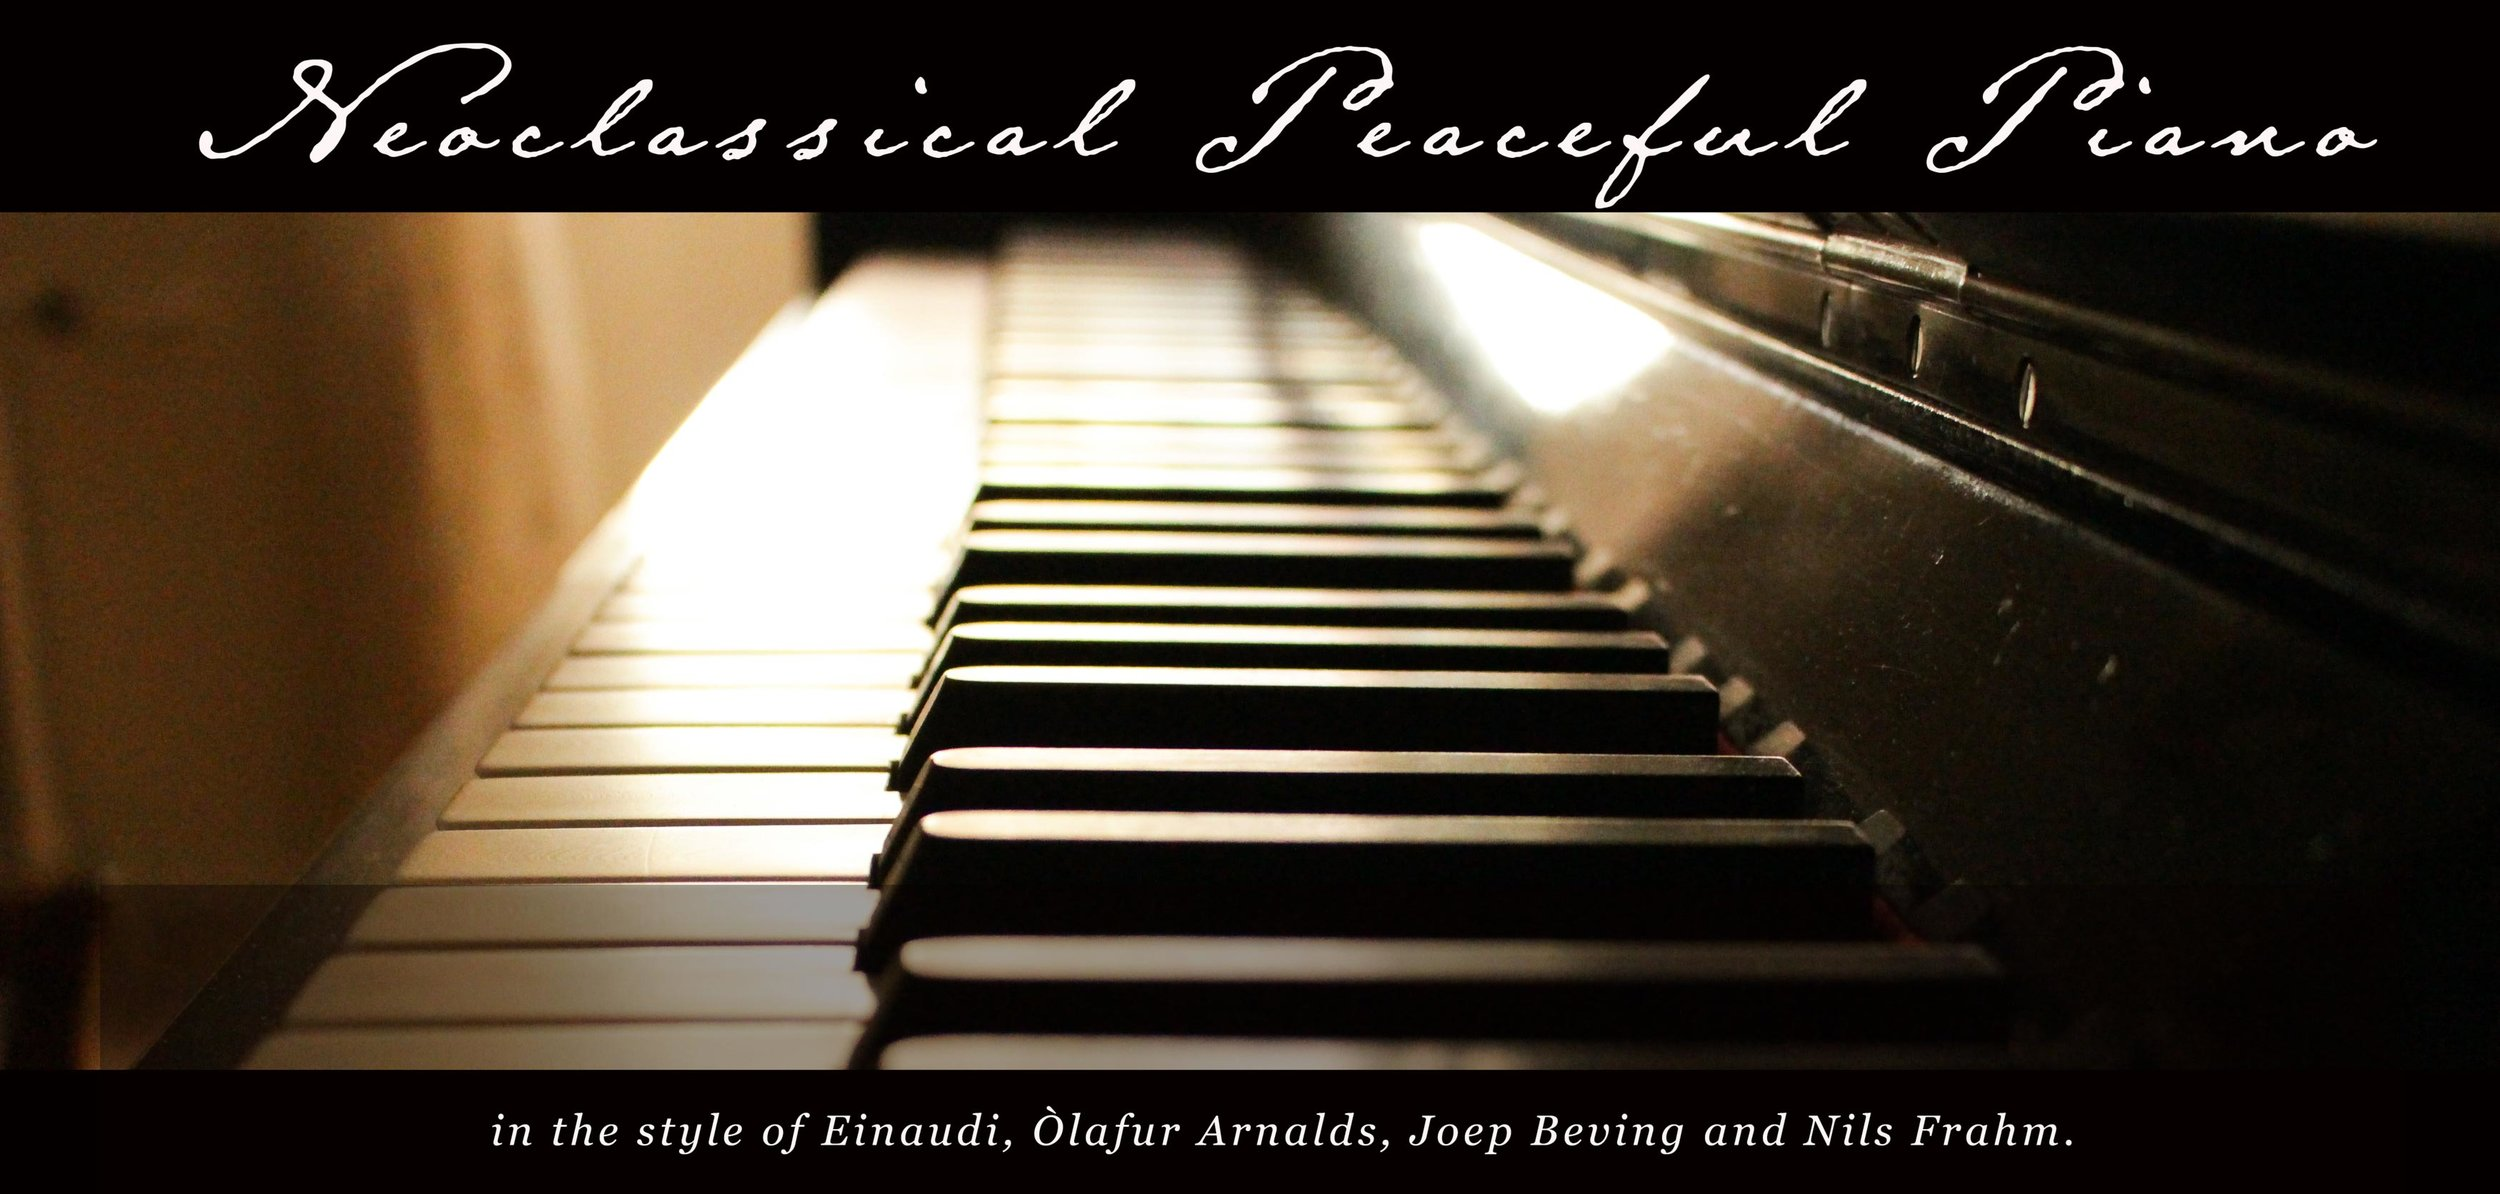 Neoclassical Peaceful Piano in the style of Einaudi, Òlafur Arnalds, Joep Beving and Nils Frahm.